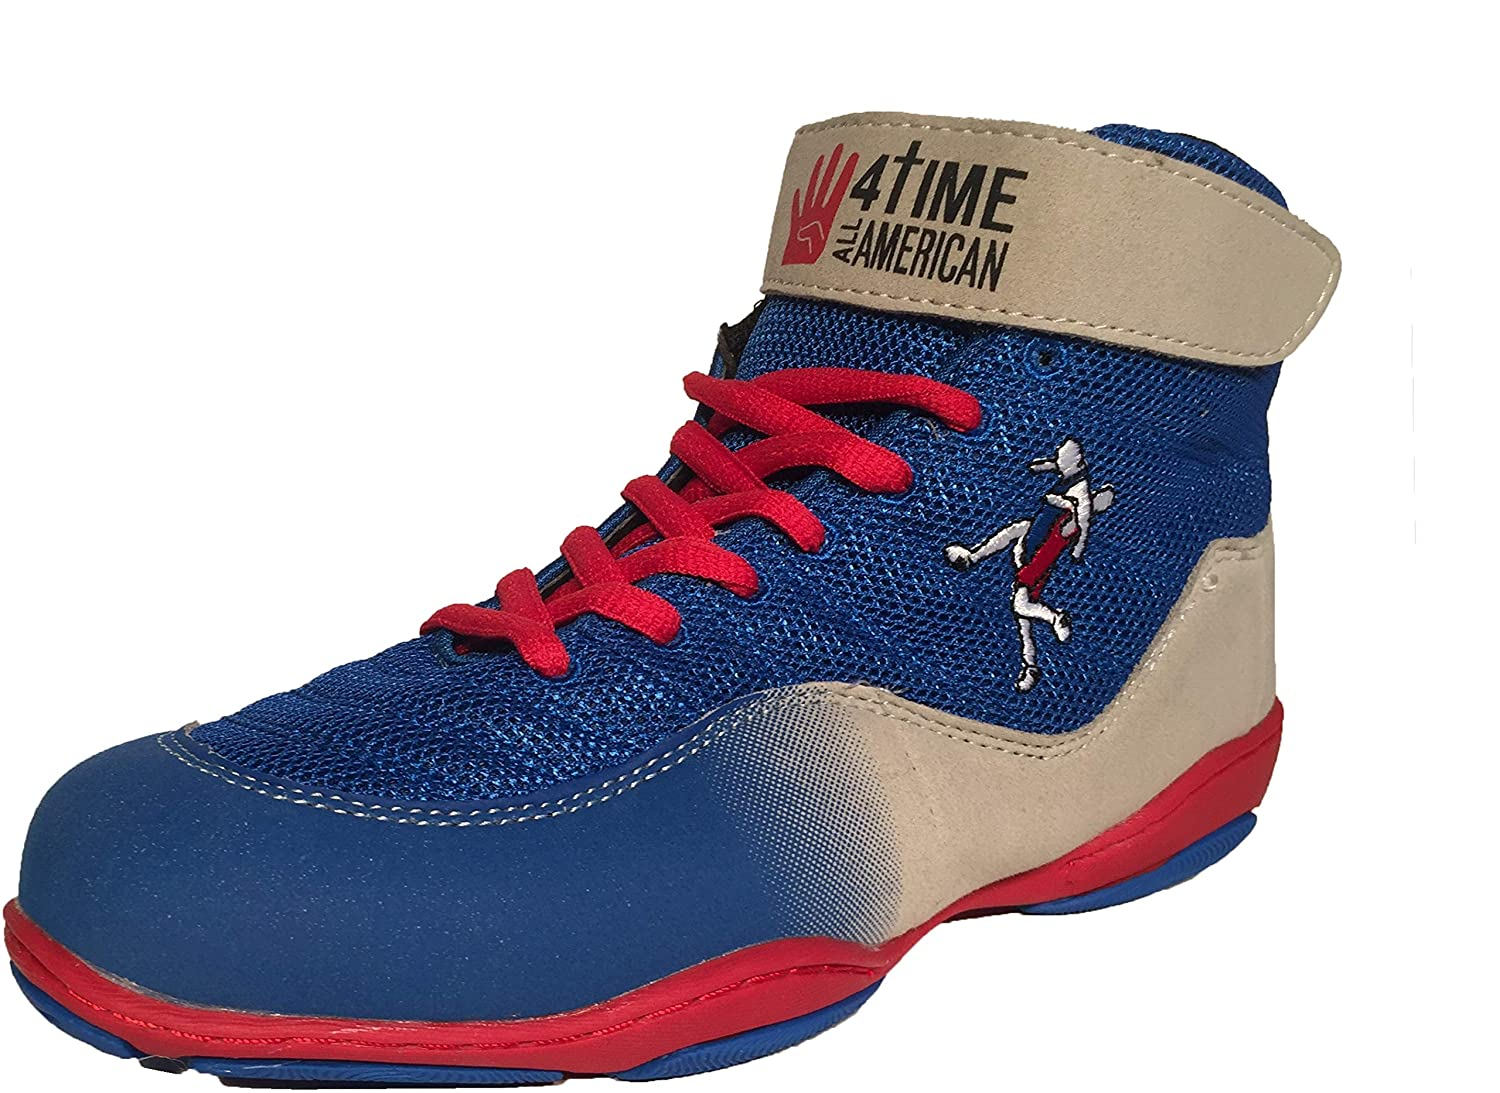 4-Time All American The Patriot, Blue Wrestling Shoes Youth Sizes 1-6 4 Time All American